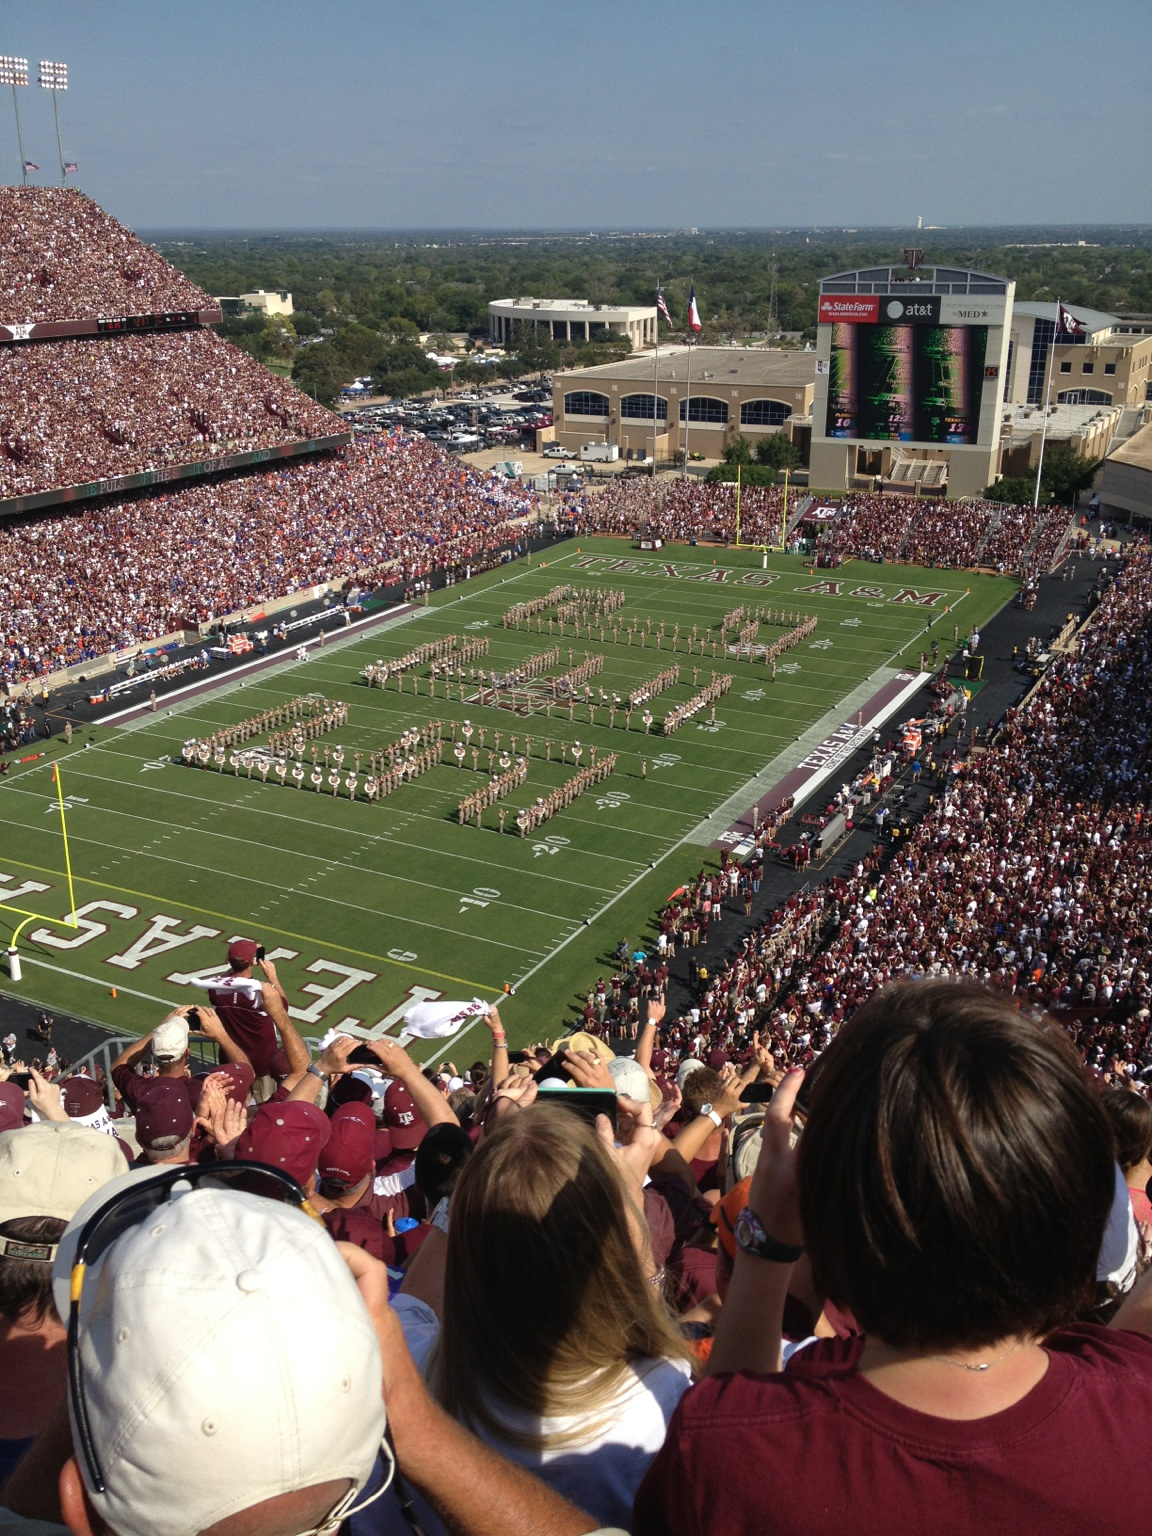 Welcome to the SEC Texas A&M. at Kyle Field – View on Path.